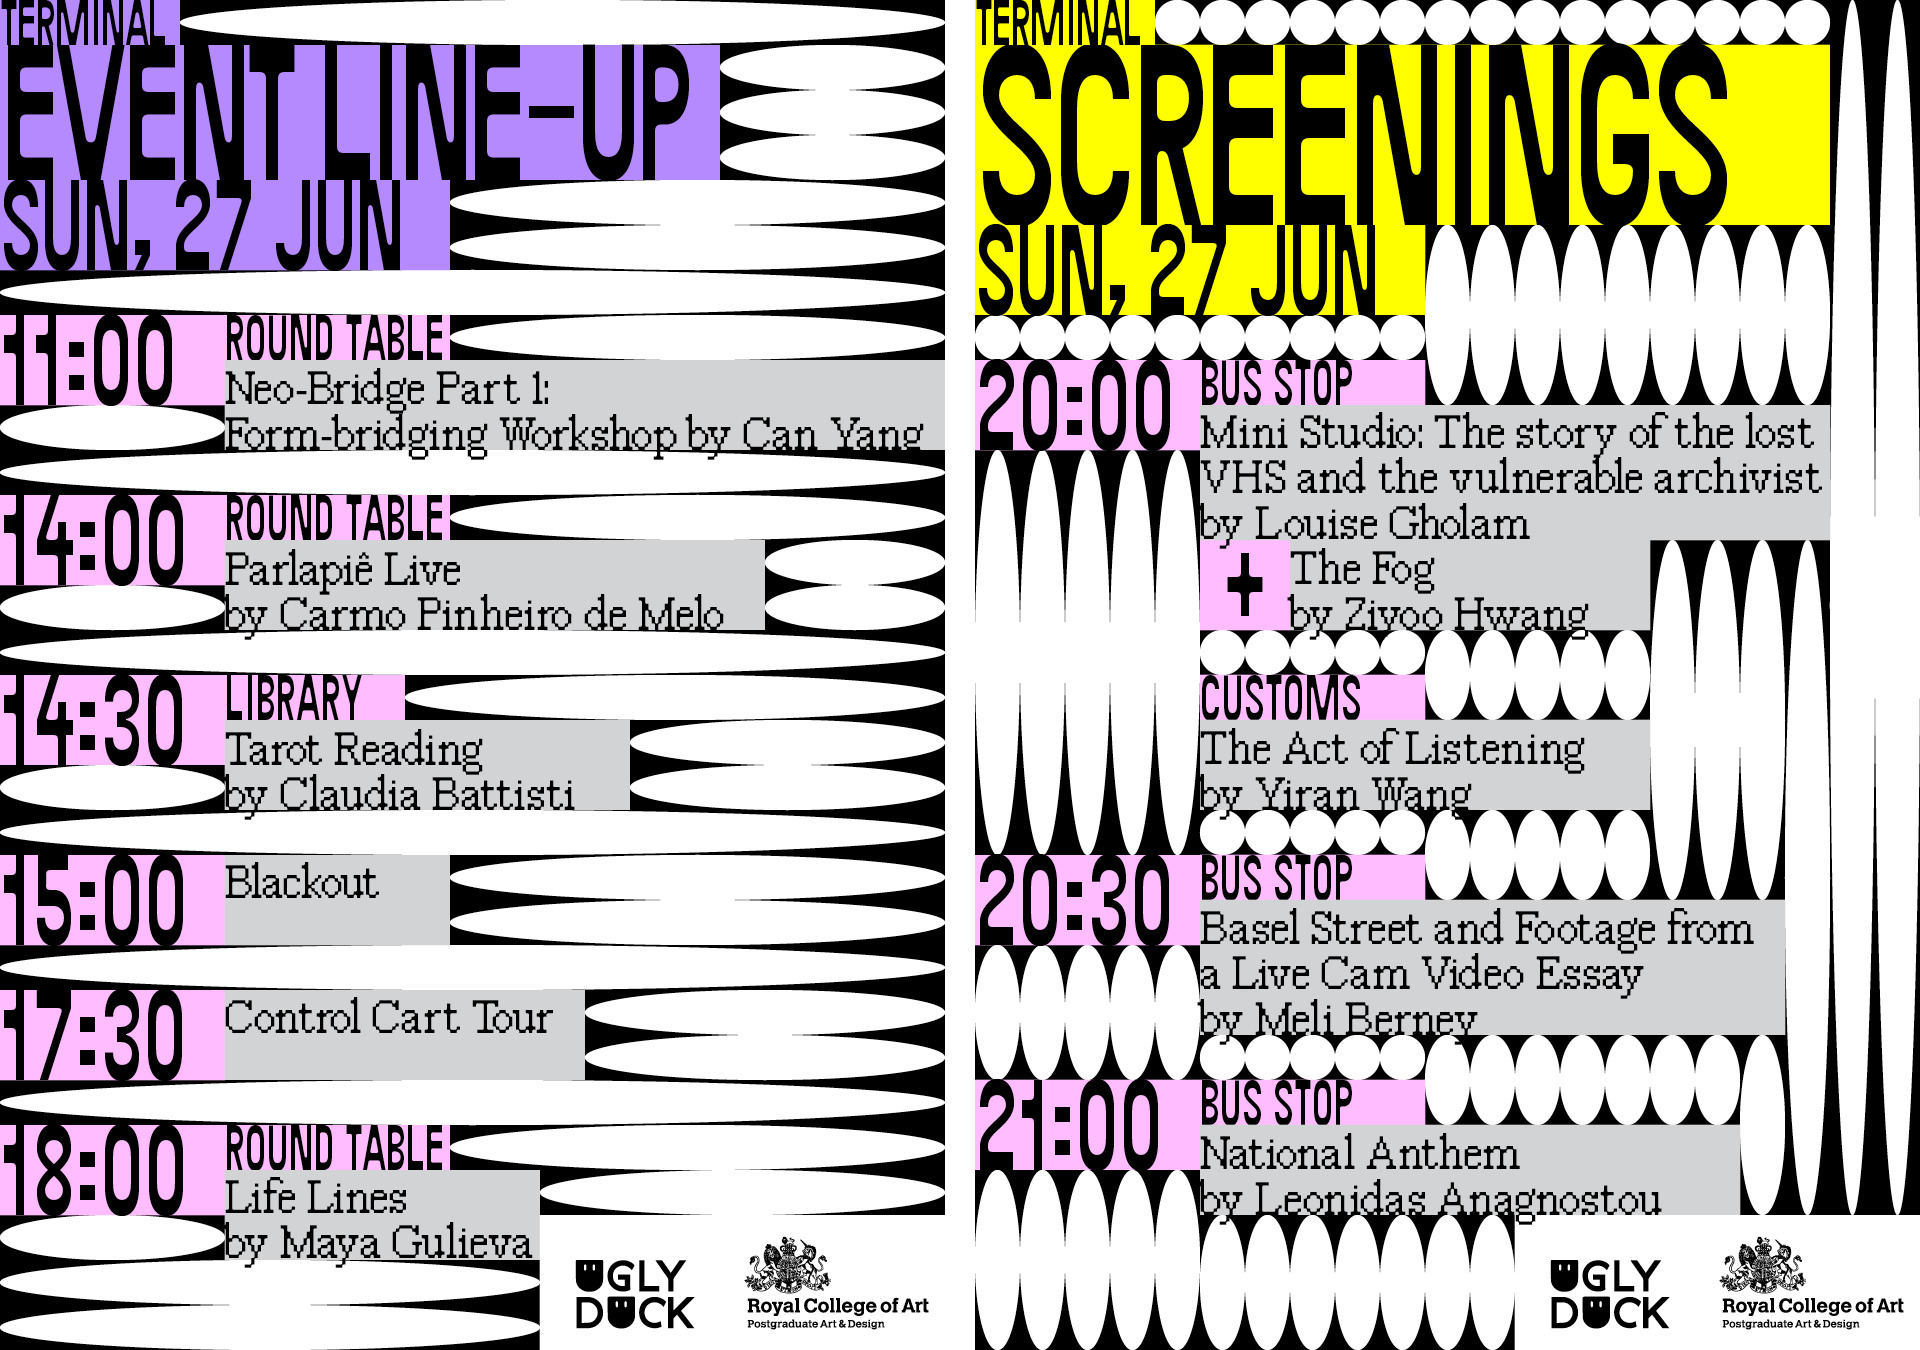 Timetable for events and screenings